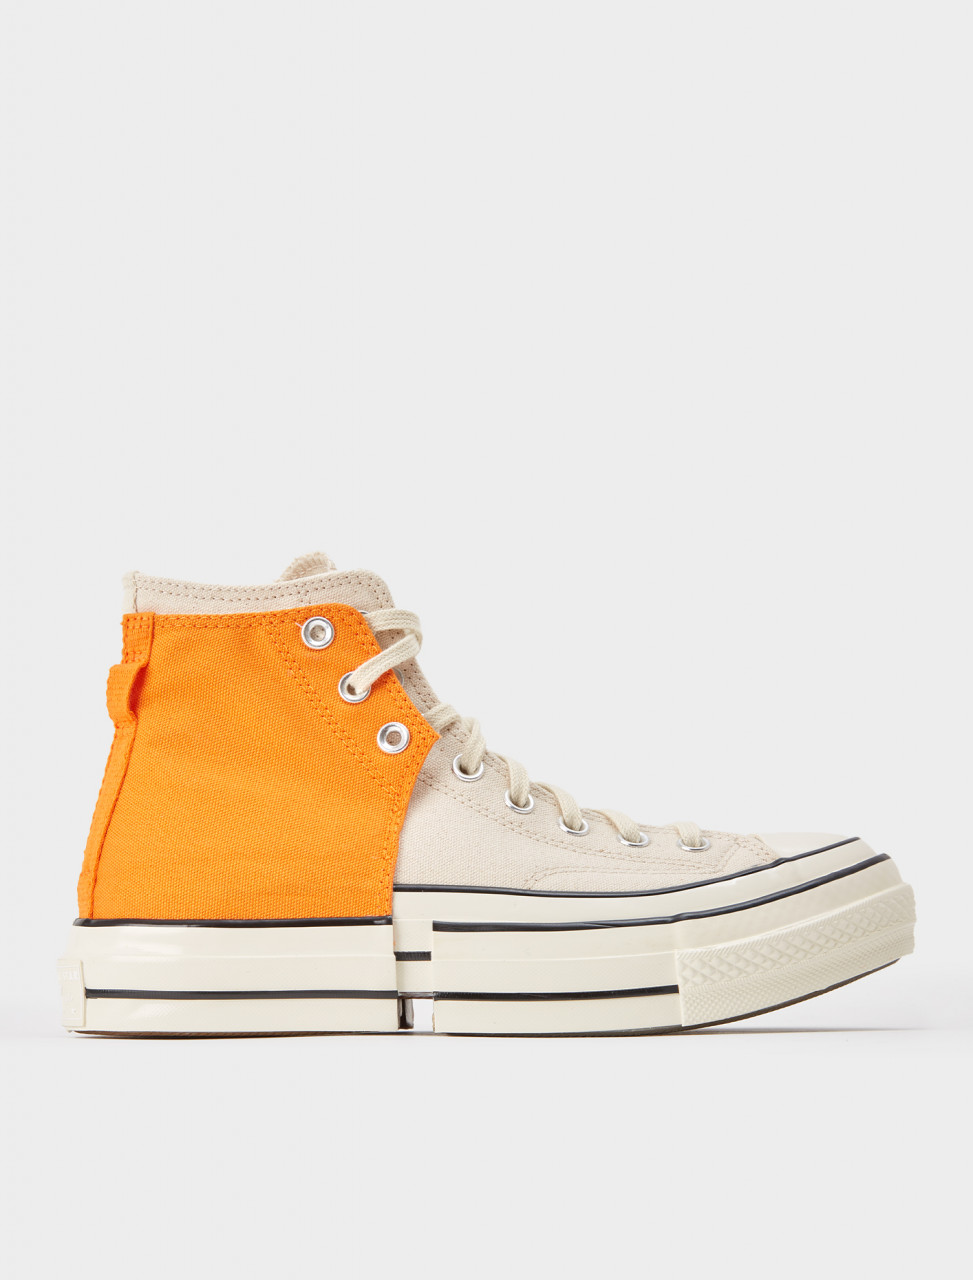 221-169840C-800 CONVERSE CHUCK 70 2 IN 1 HI PERSIMMON ORANGE NATURAL IVORY